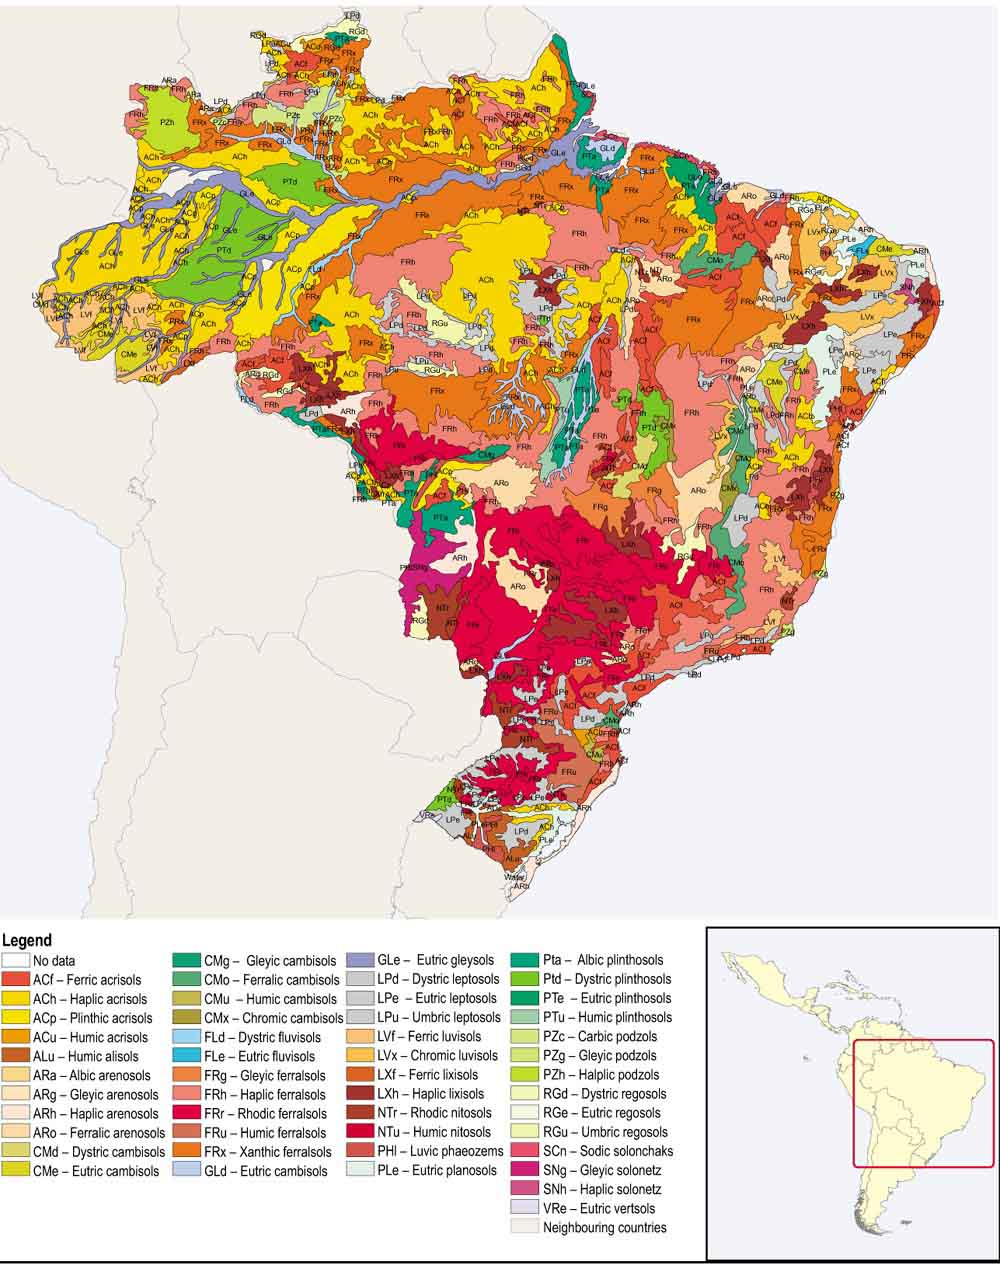 Fertilizer use by crop in zil on map of africa, map of eurpe, map of europe, map of brazil, map of greece,